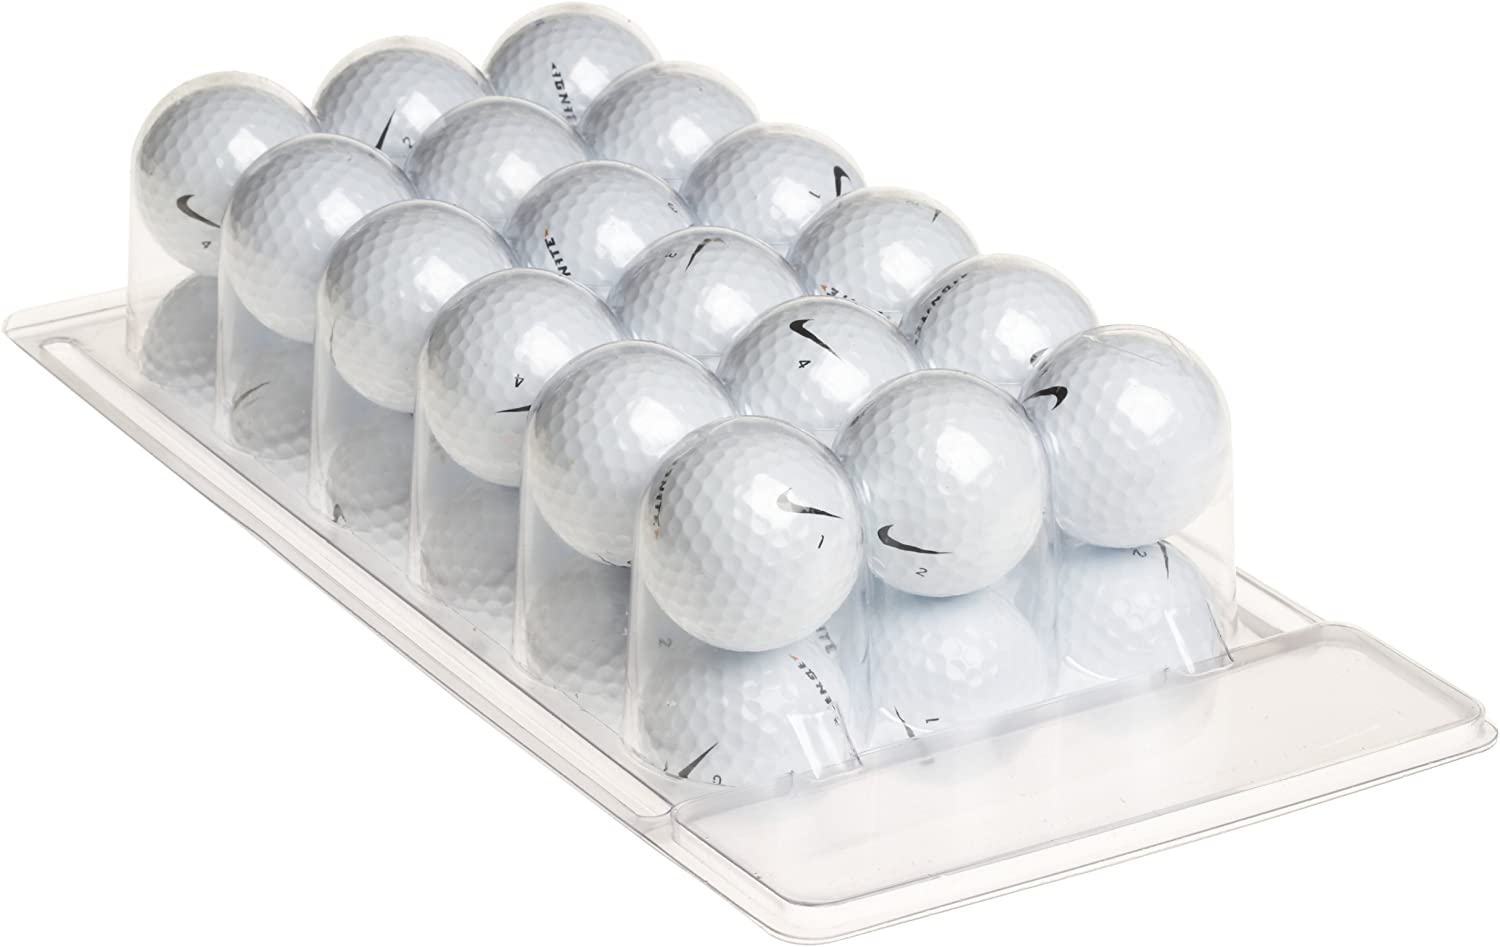 Nike Ignite Recycled Golf Balls (36 Pack Assorted)